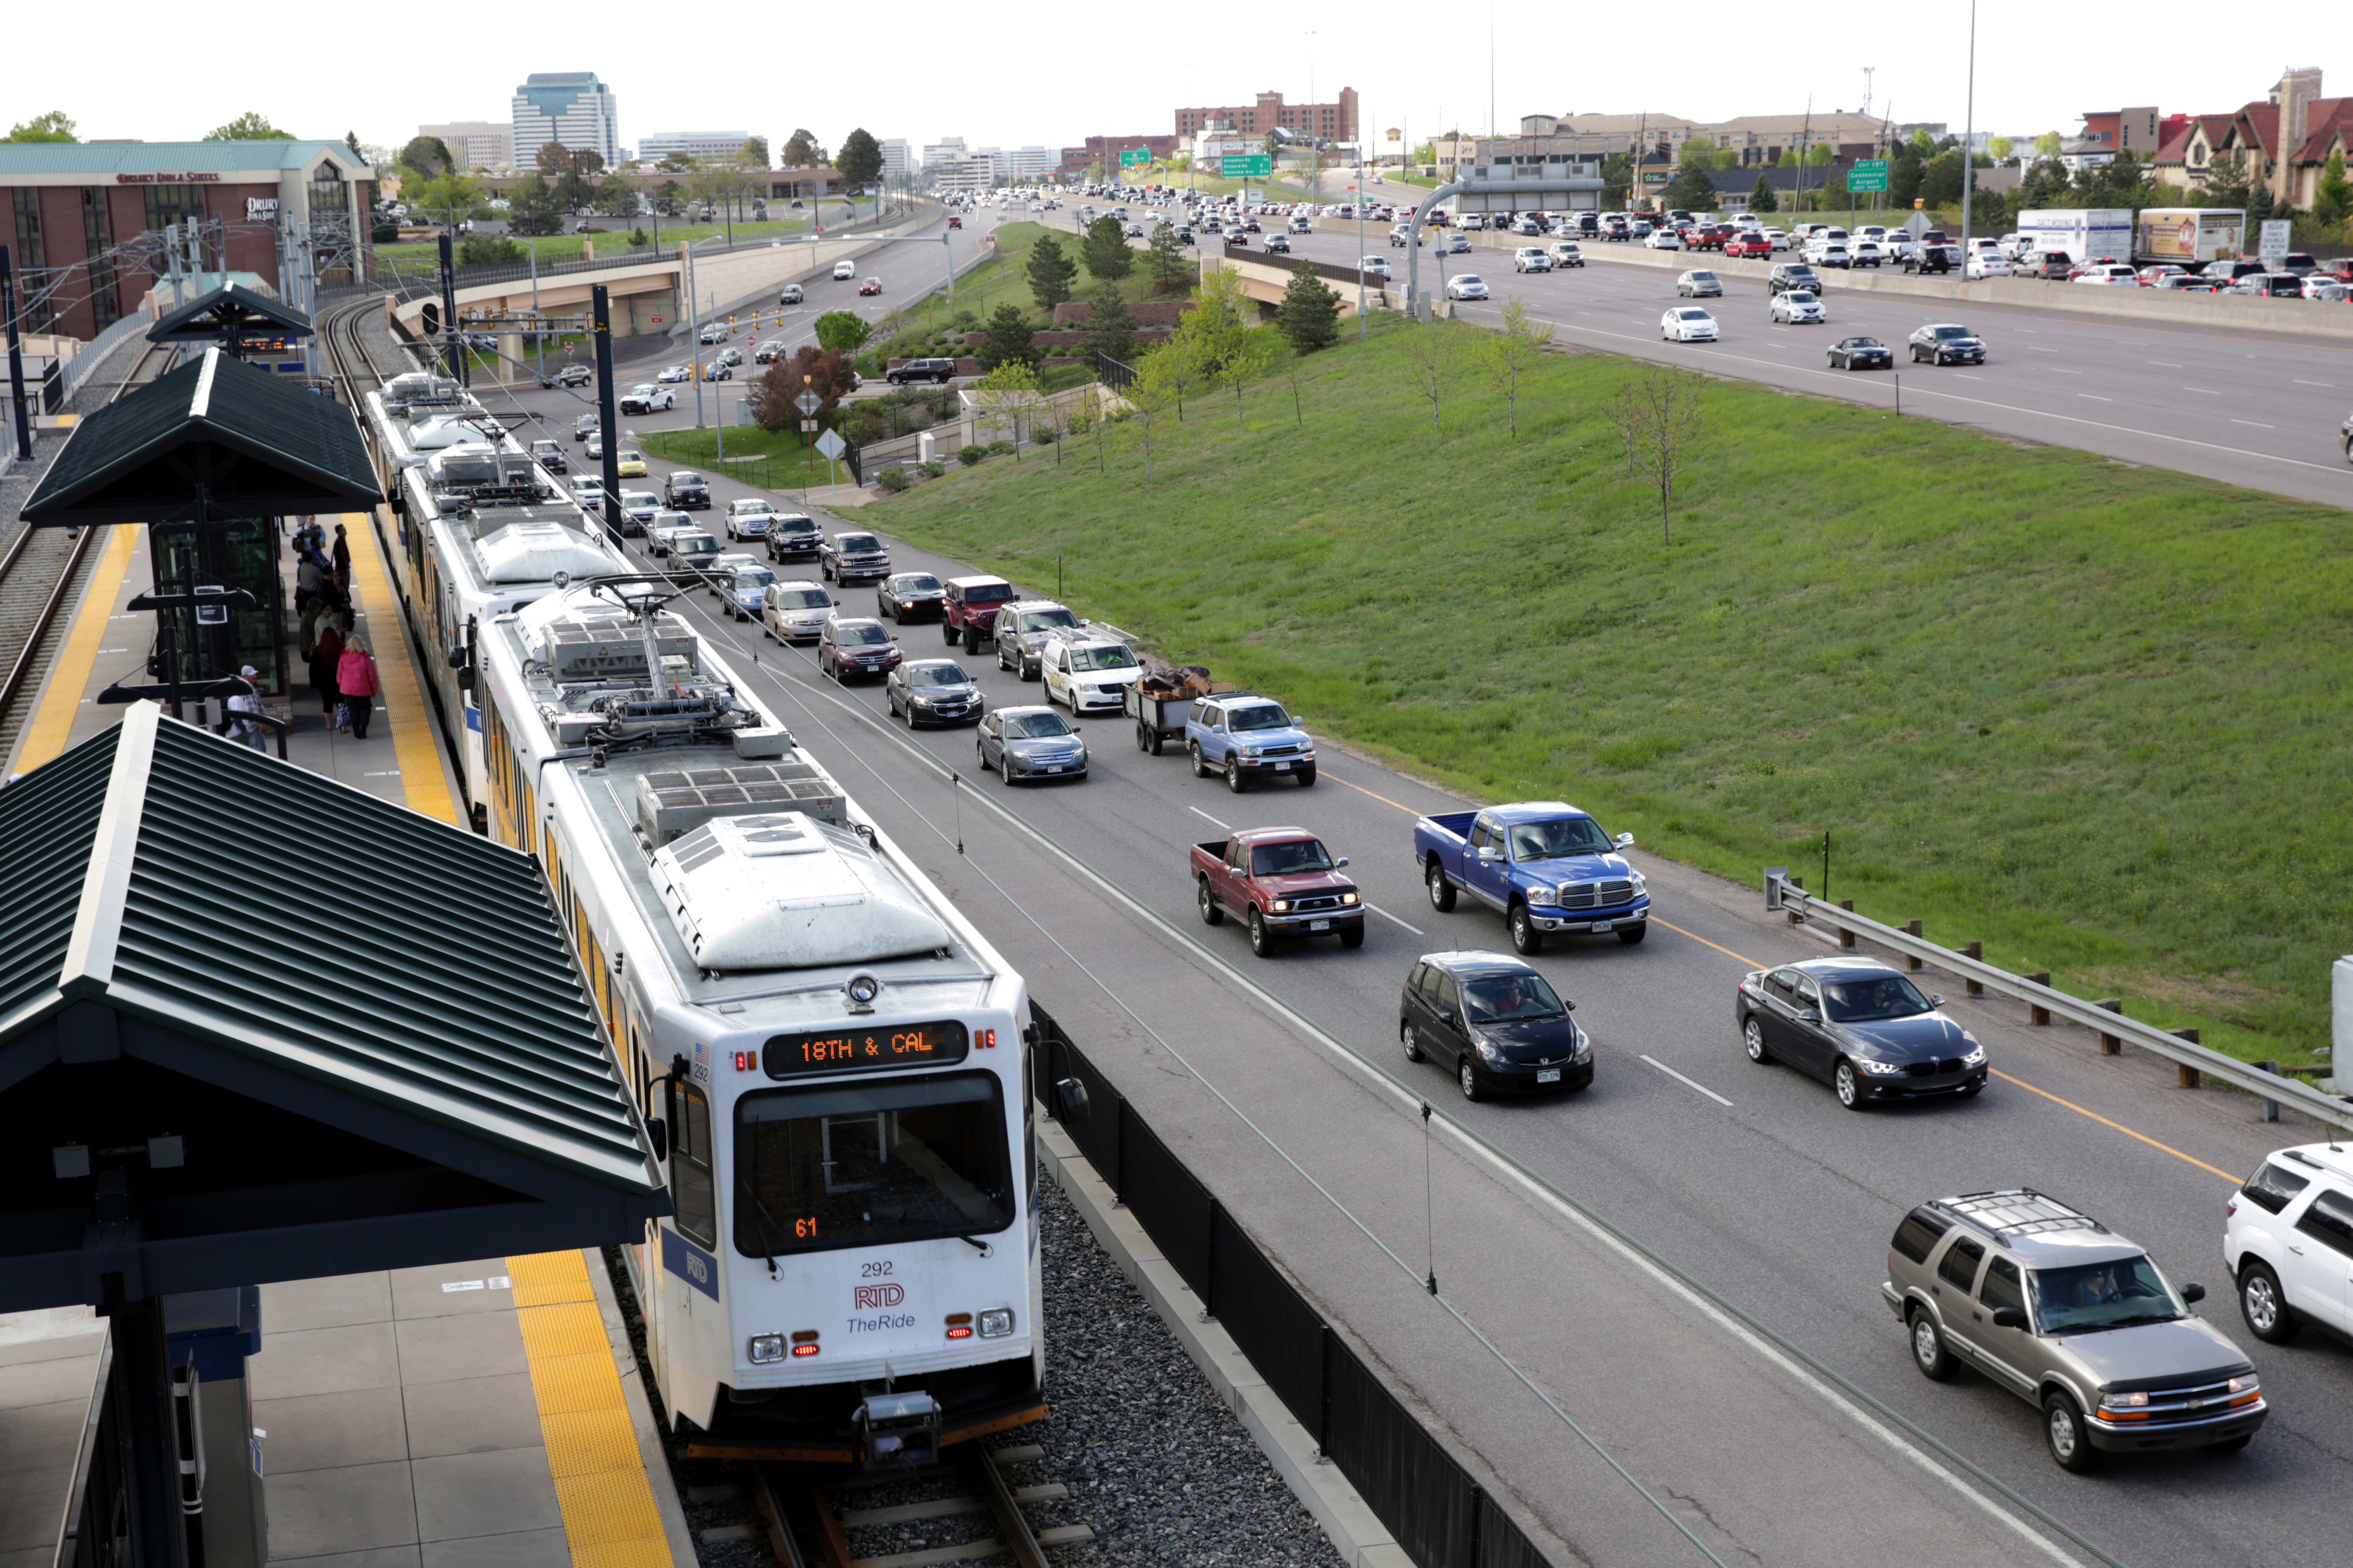 Photo: RTD Light Rail F Train At Dry Creek Station, From Above (HV)